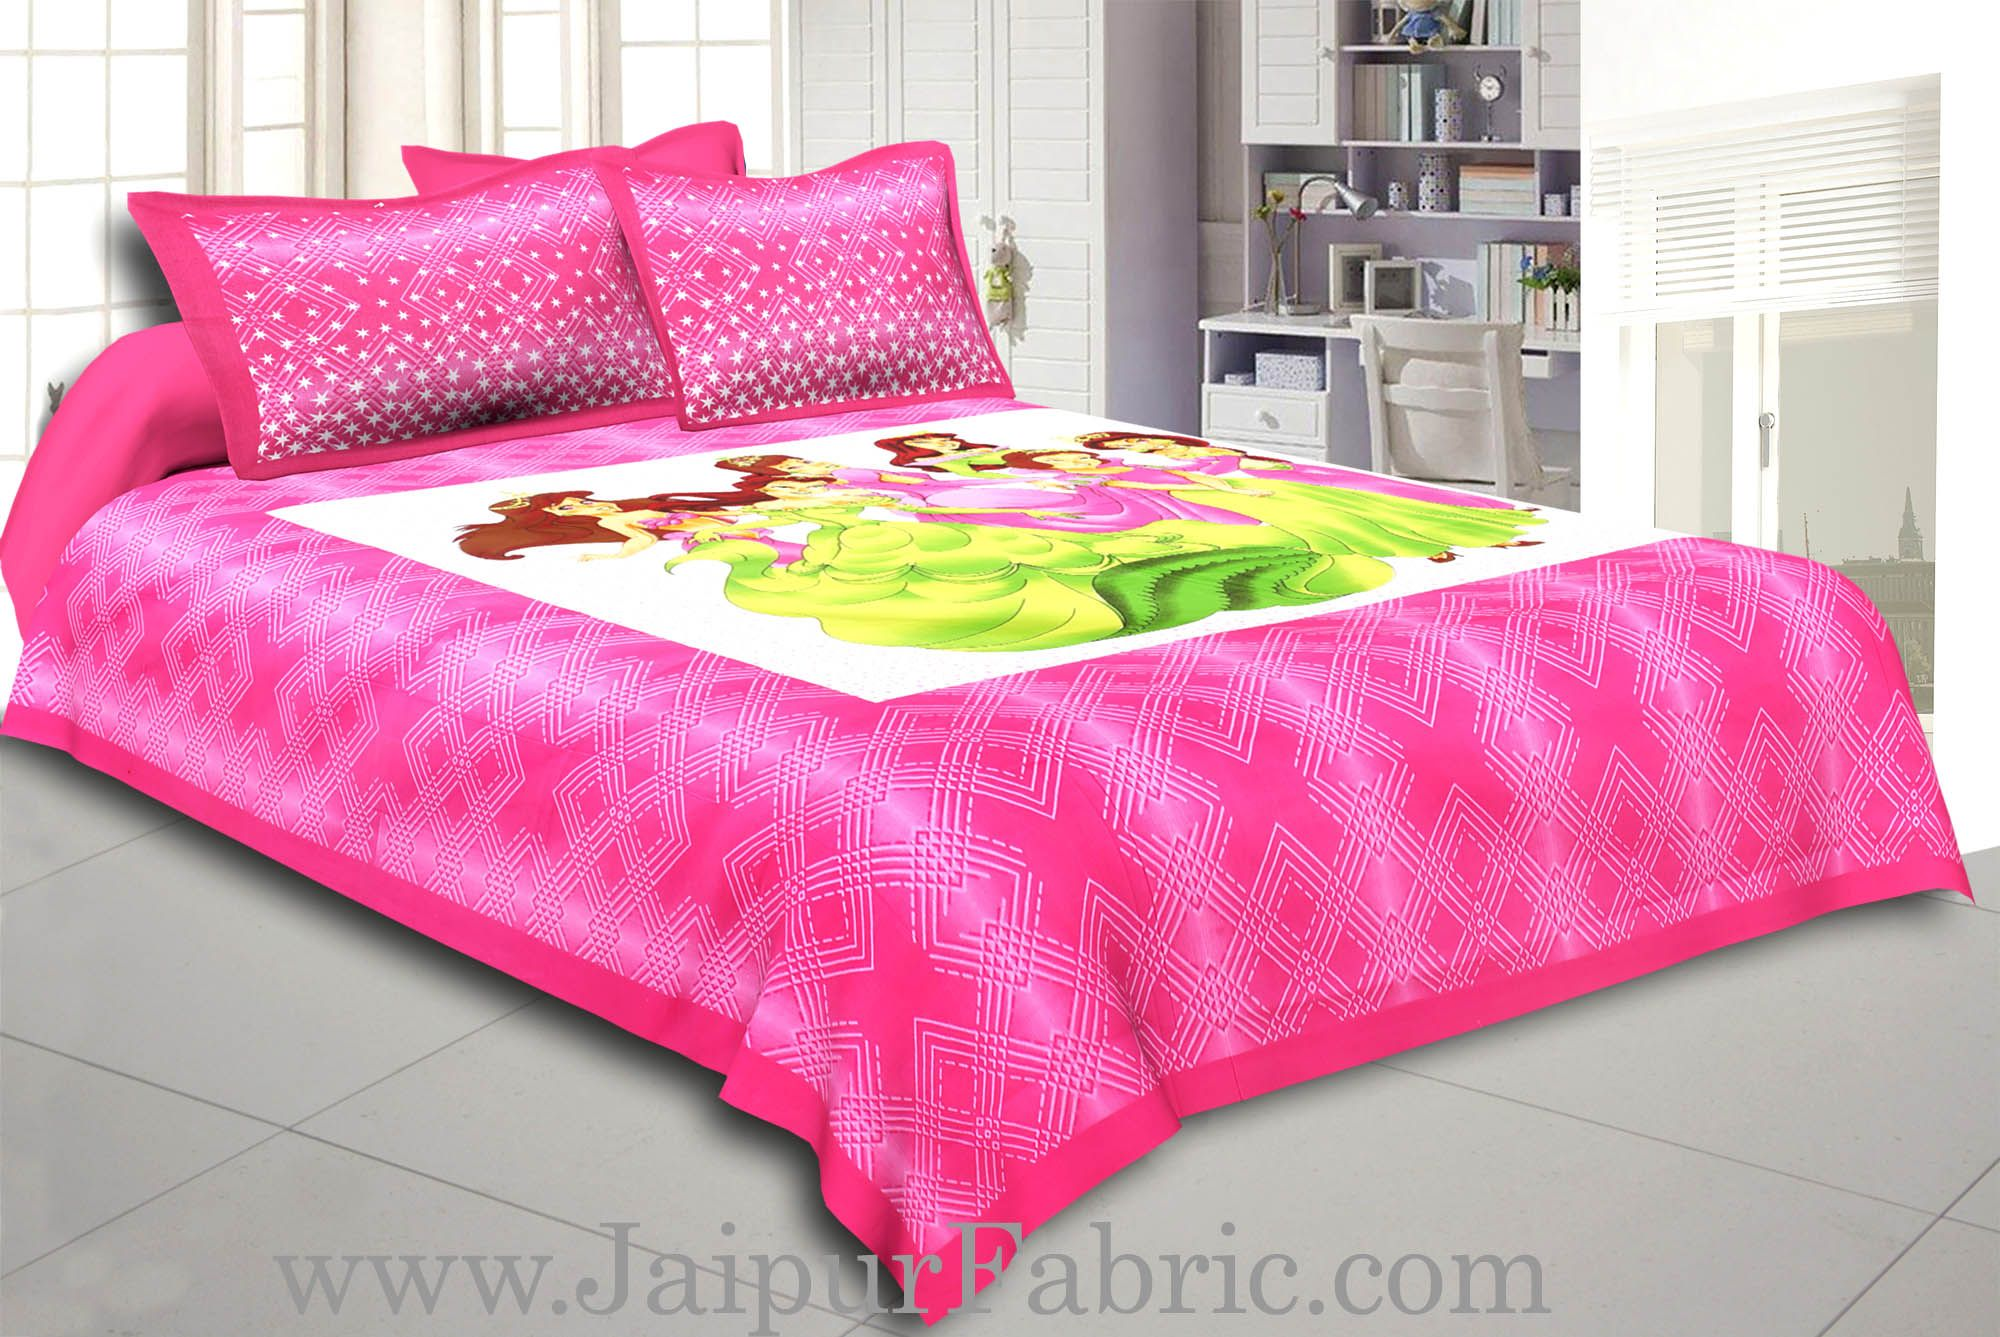 Dark Pink Barbie Doll Cotton Double Bed Sheet